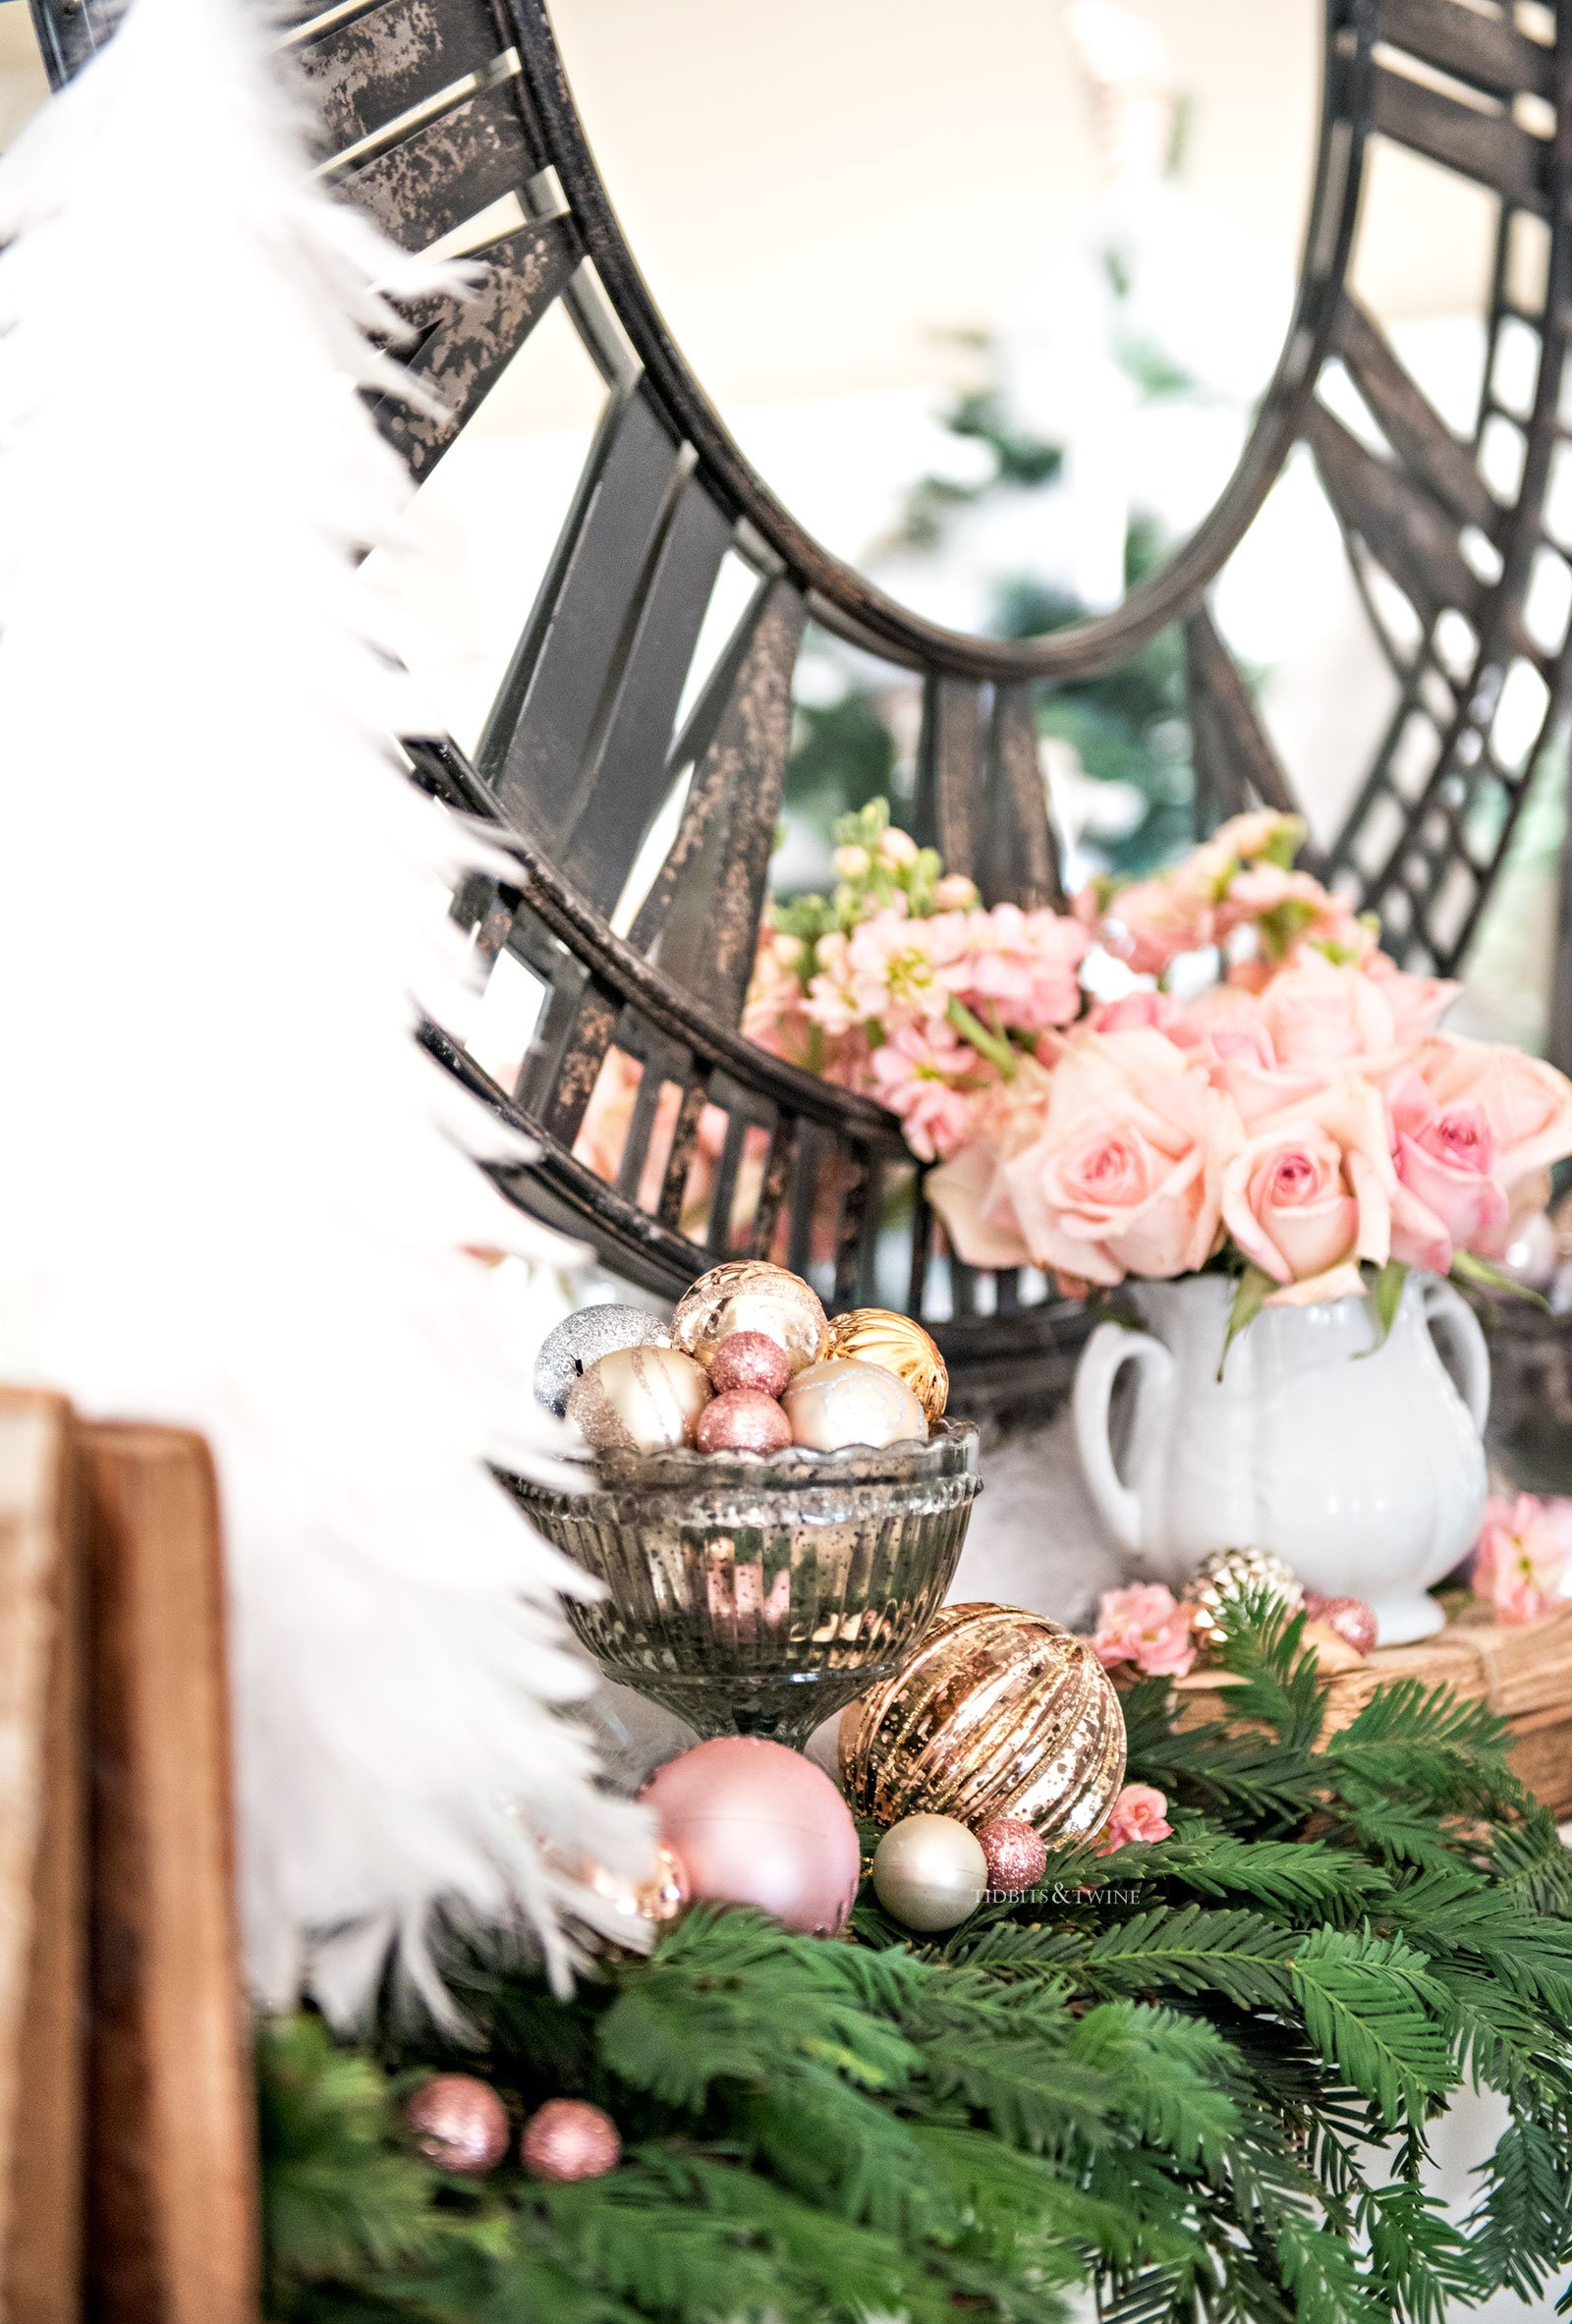 Fireplace mantel with white feather Christmas tree decorated with pink ornaments and roses